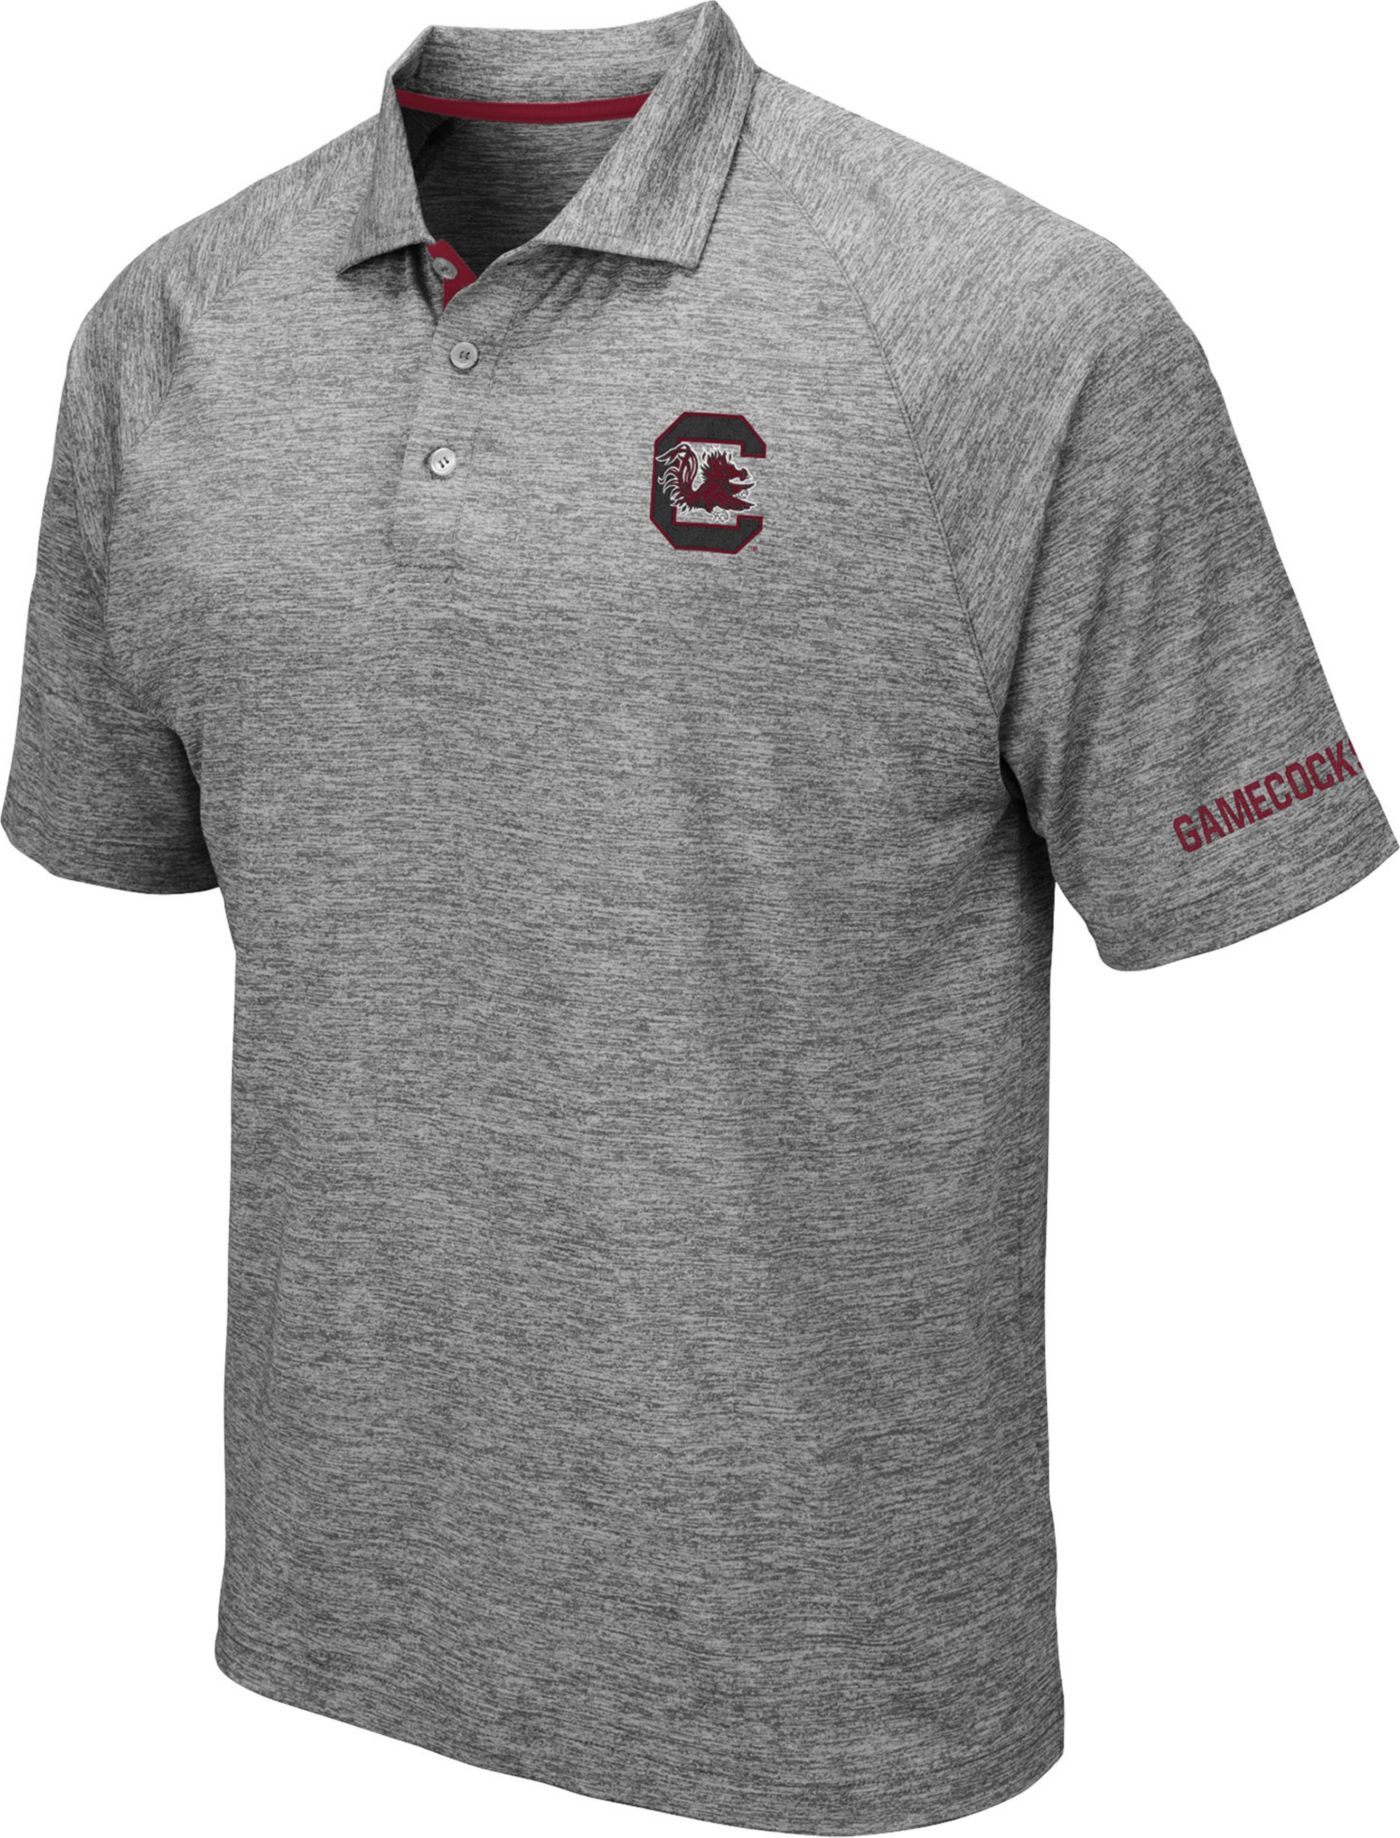 Colosseum Men's South Carolina Gamecocks Grey Chip Shot Polo